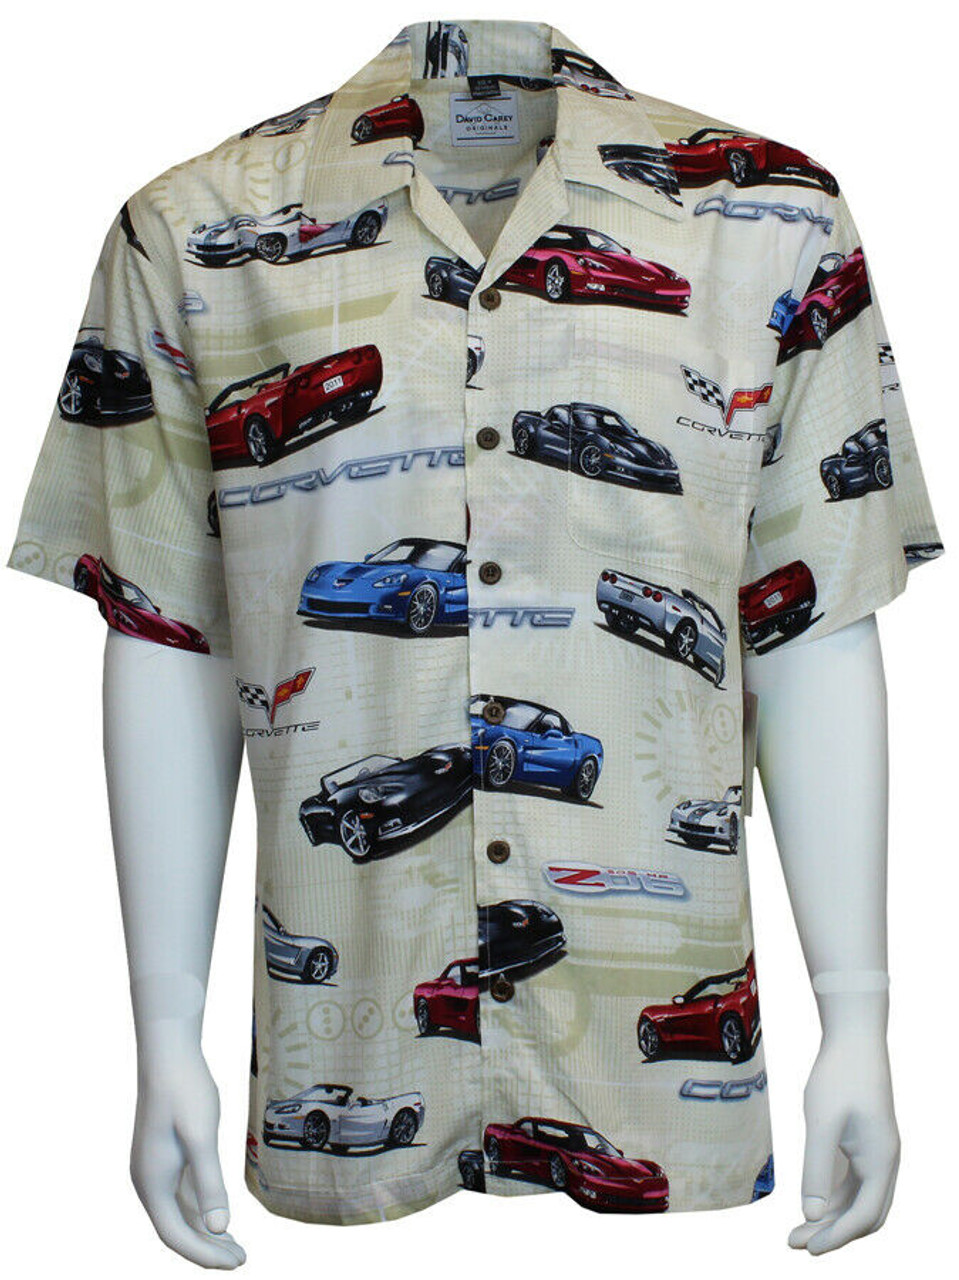 FORD CLASSIC 1940s CARS HAWAIIAN CAMP SHIRT NEW David Carey CLEARANCE SALE